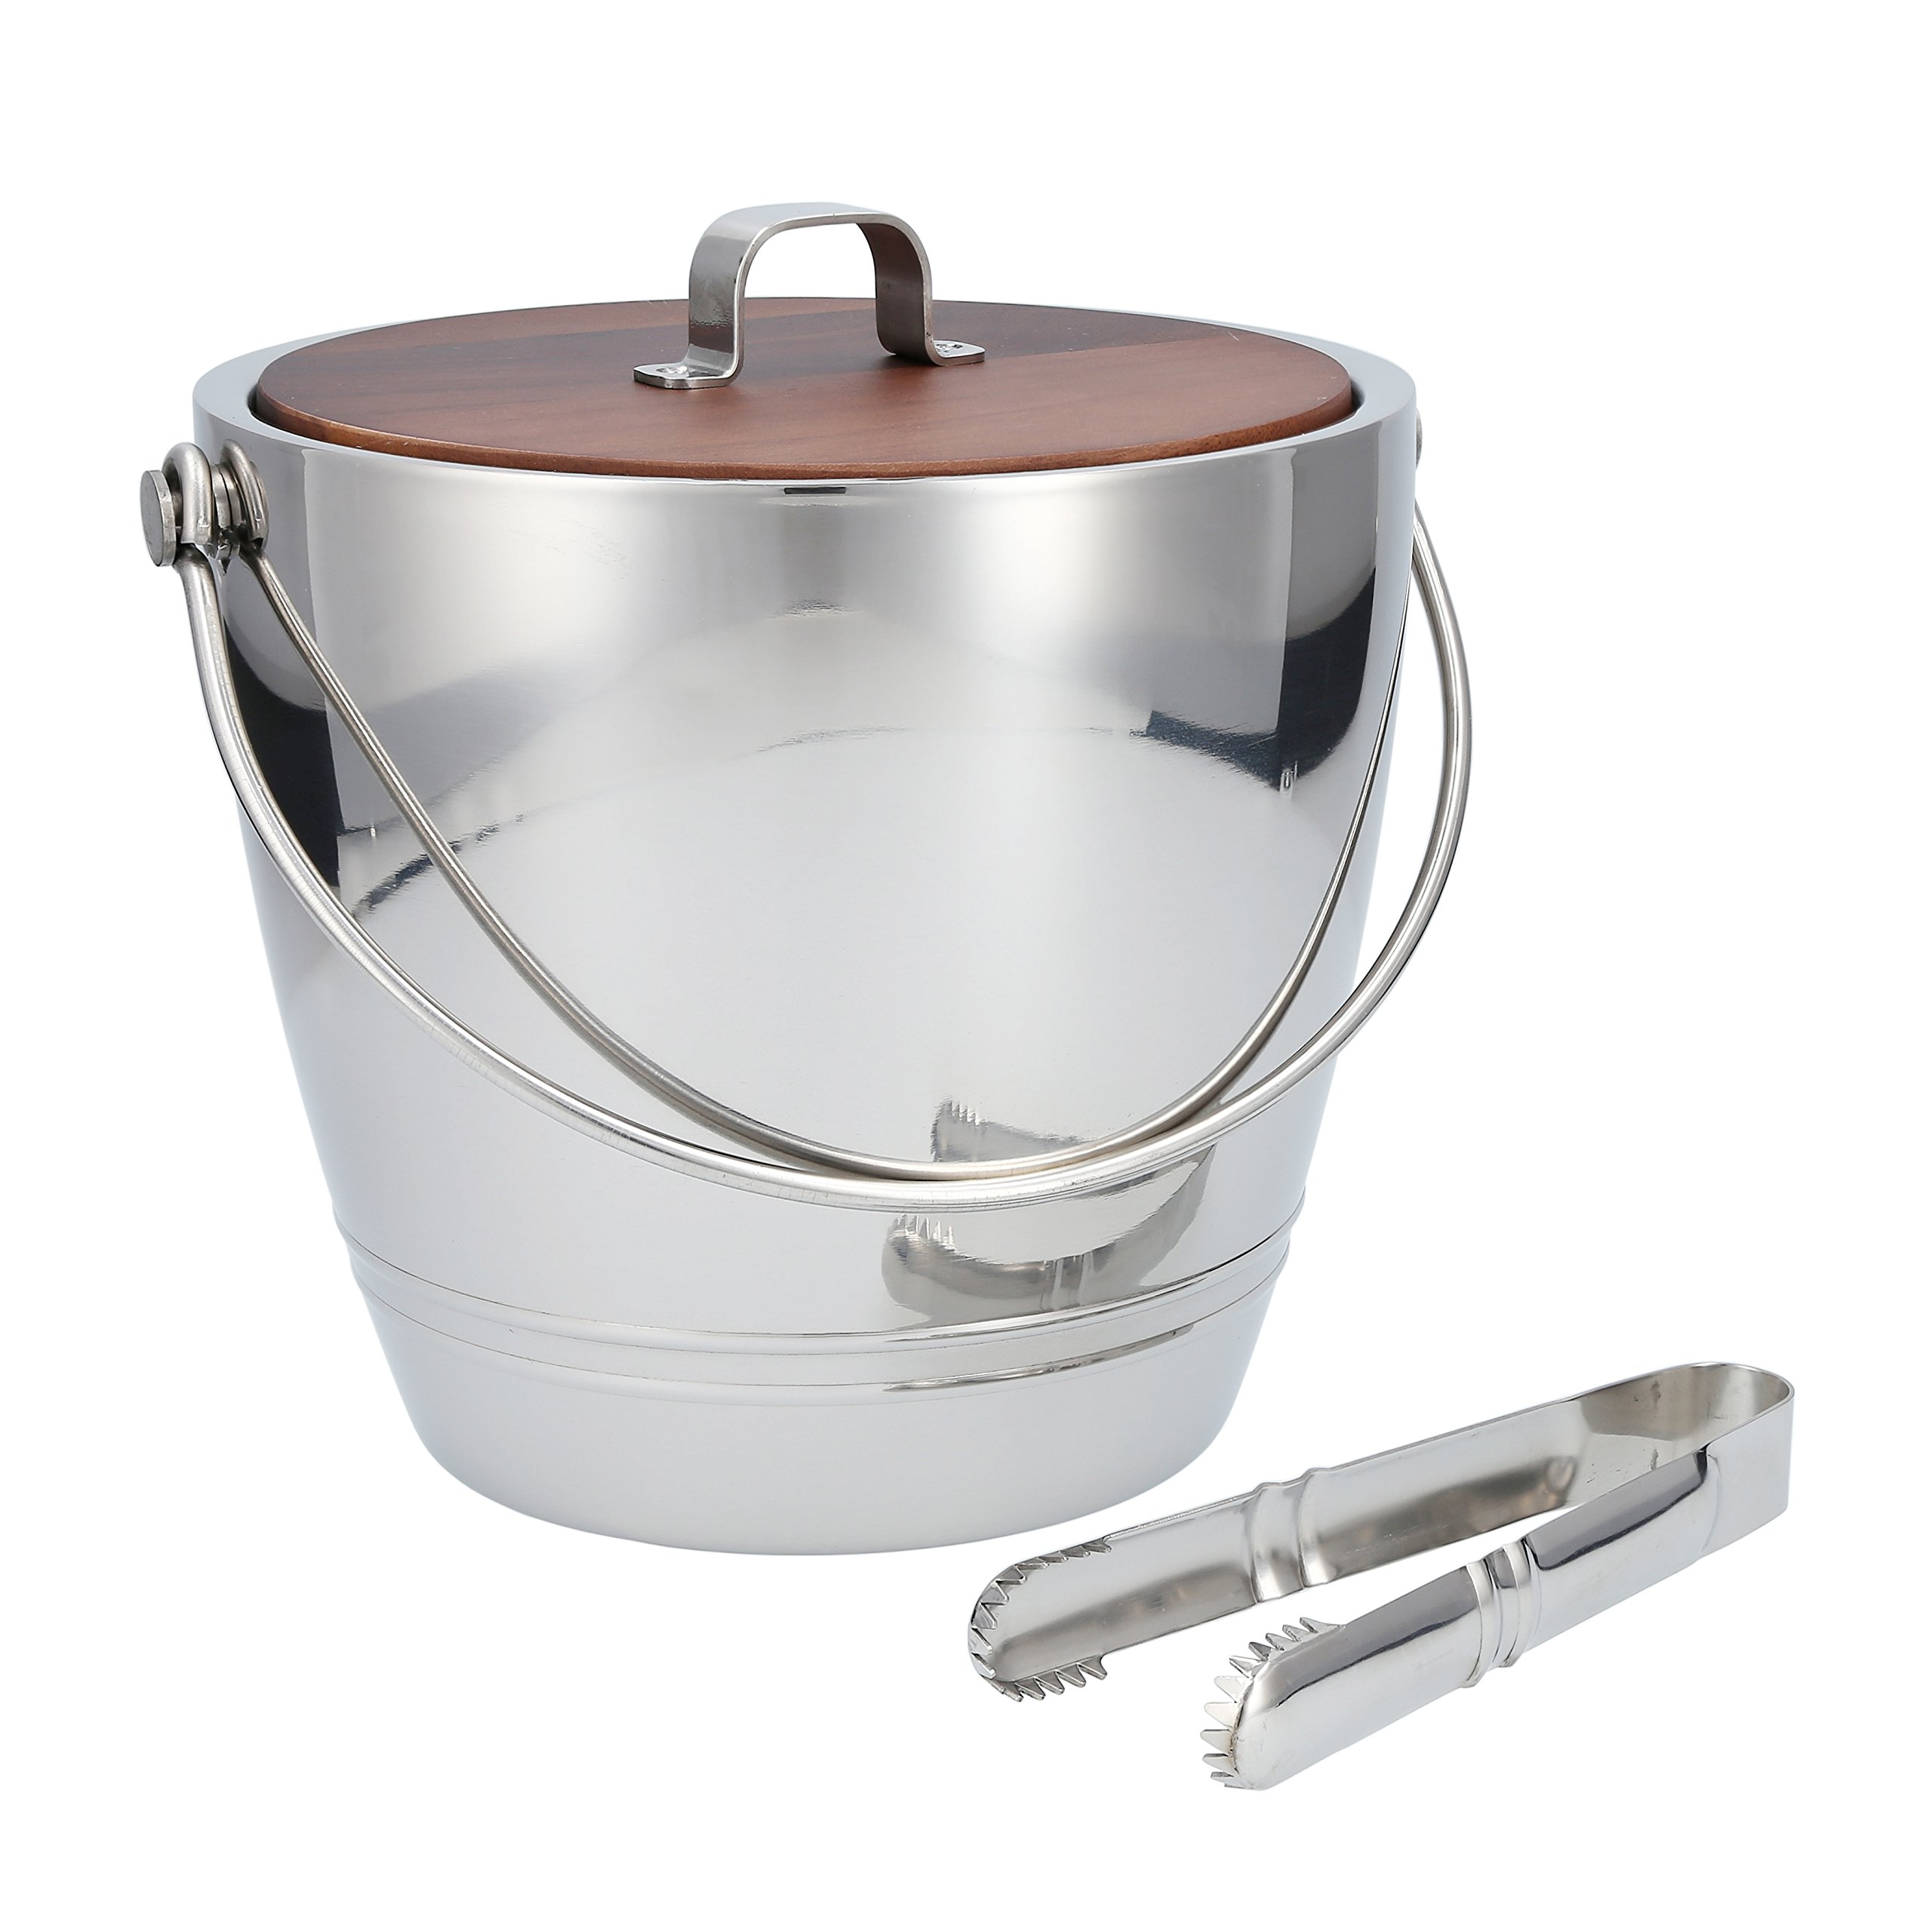 Crafthouse by Fortessa Professional Barware by Charles Joly Stainless Steel Round Ice Bucket with Tongs